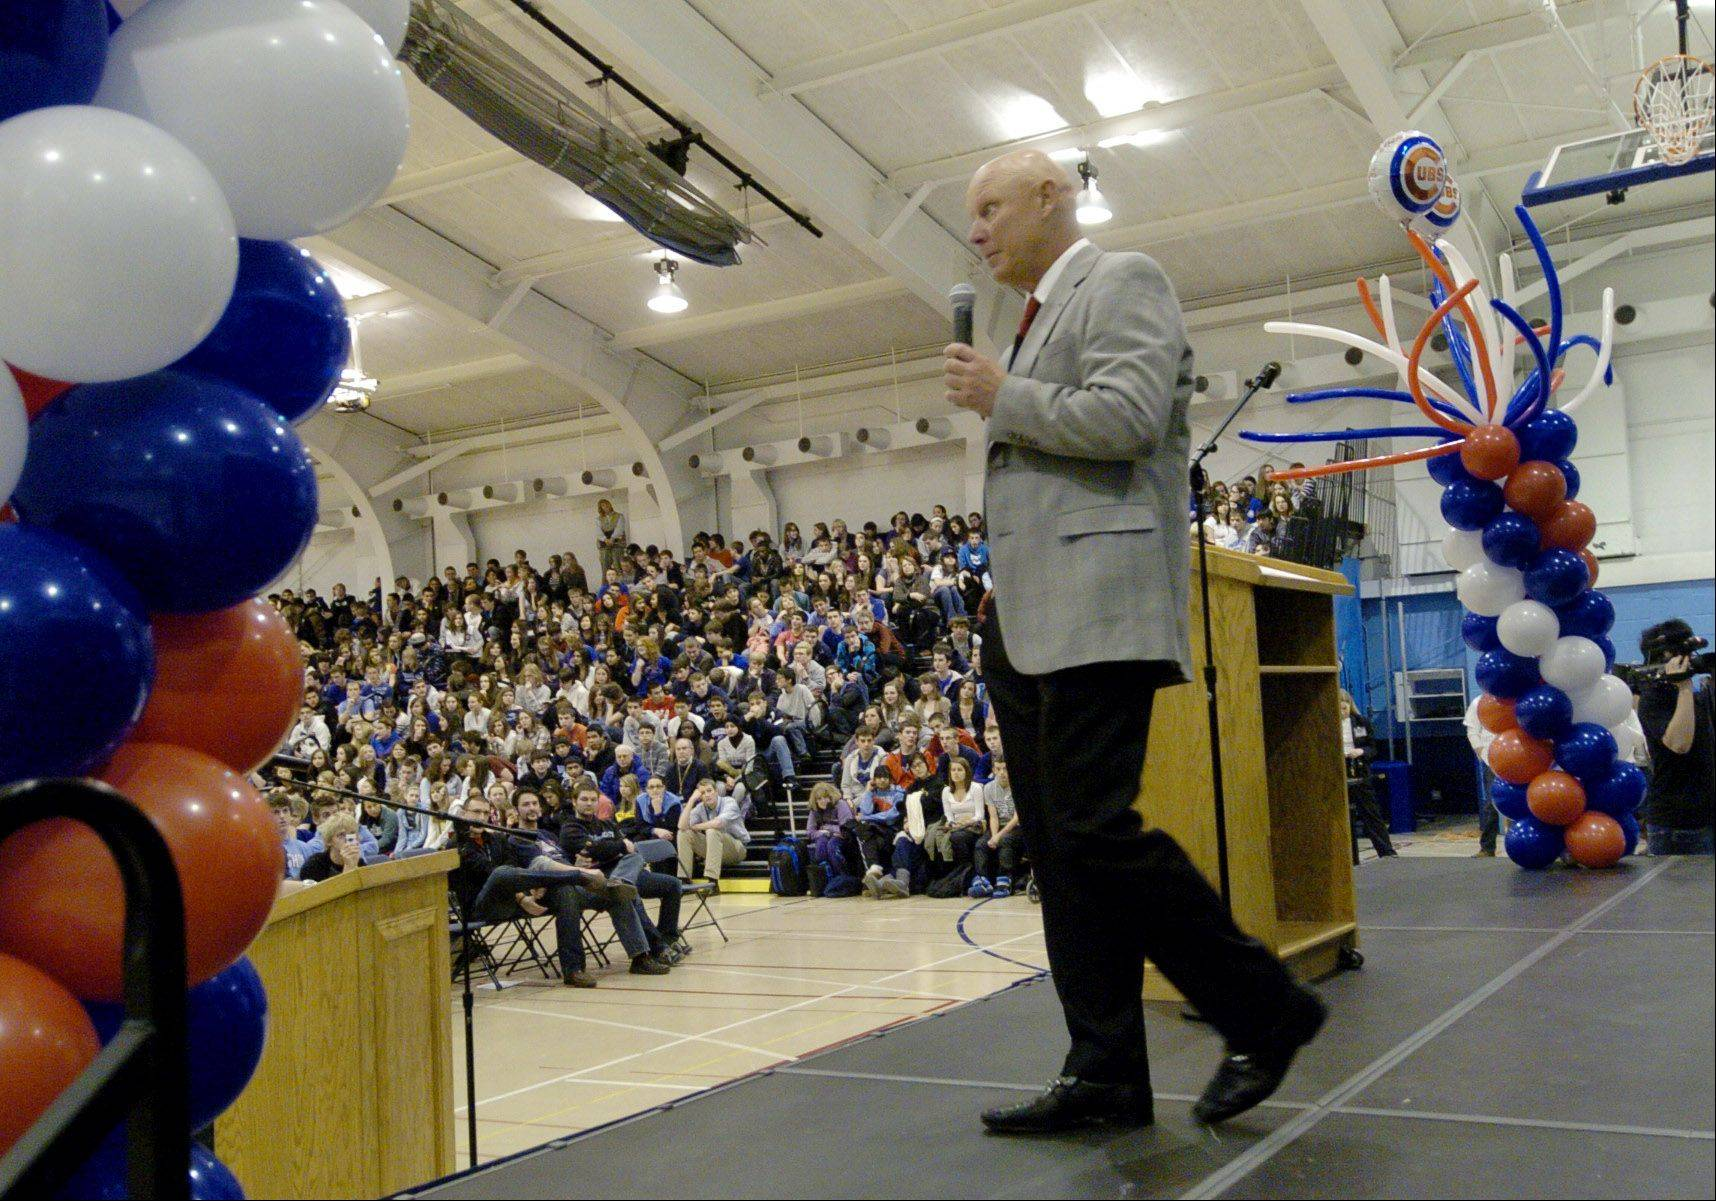 Cubs manager Mike Quade speaks at an assembly during his visit to his old high school, Prospect High.